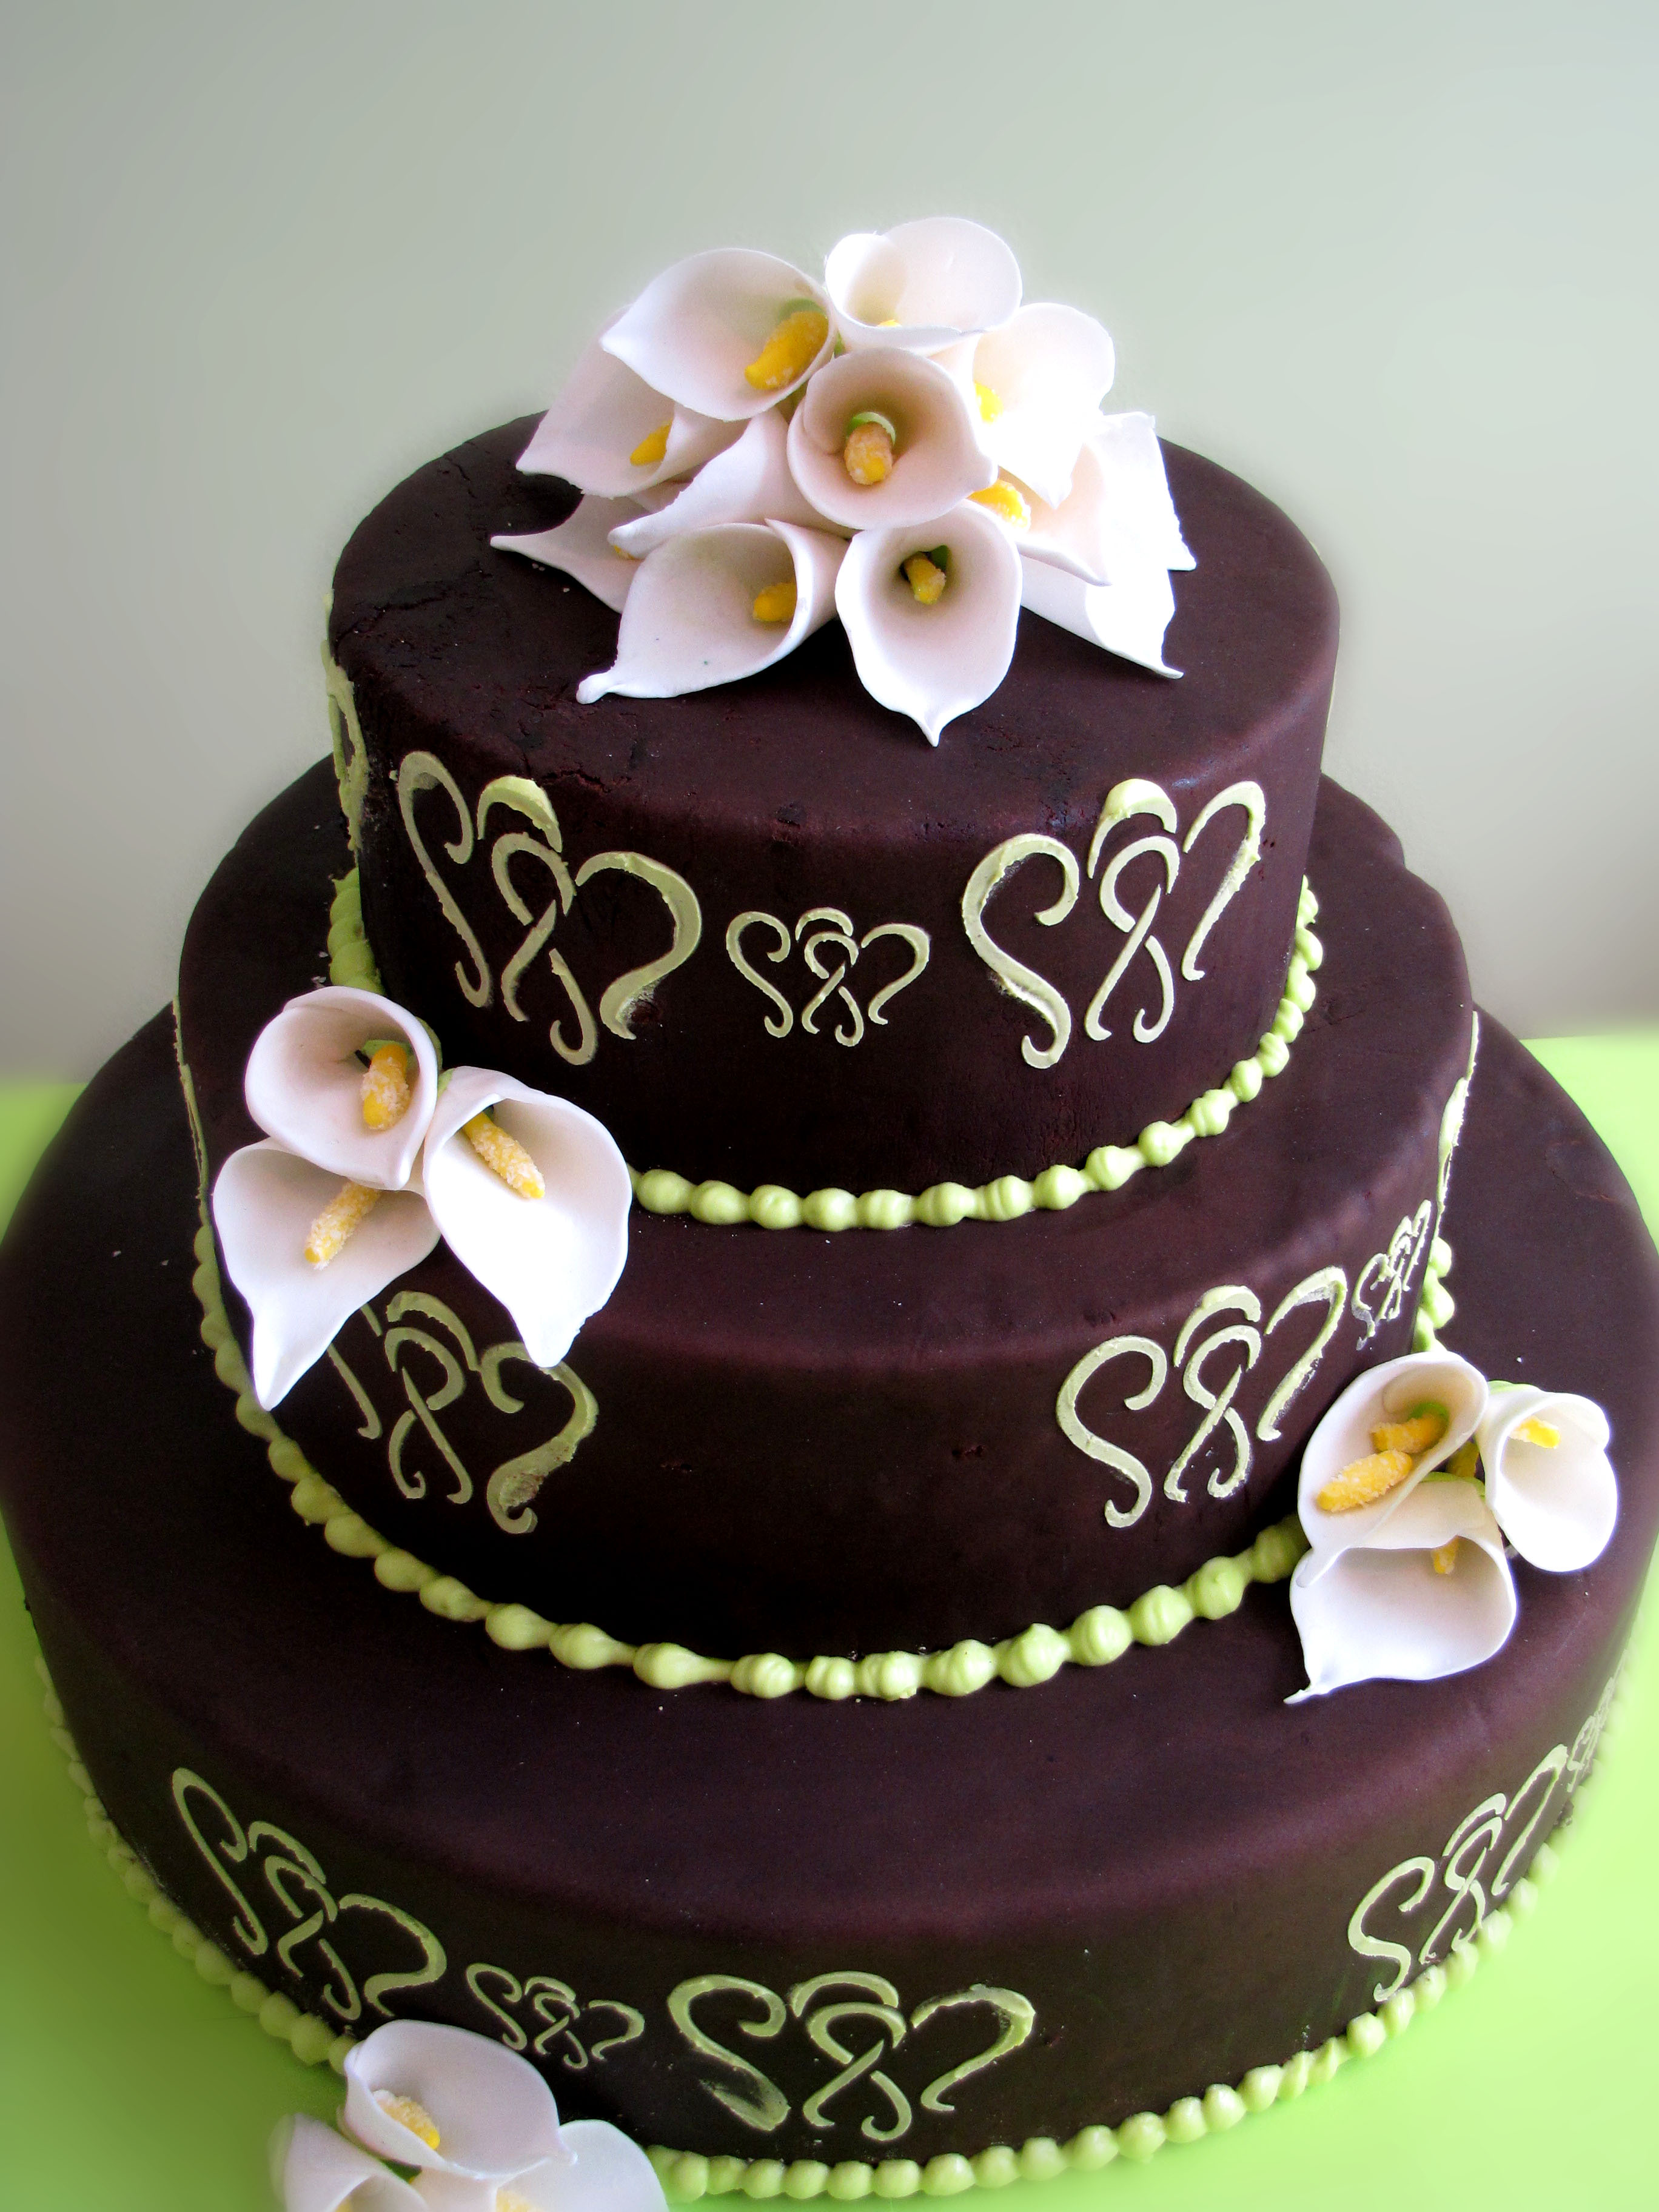 Green And Brown Living Room Decor: Cakes - Hearts On Pinterest